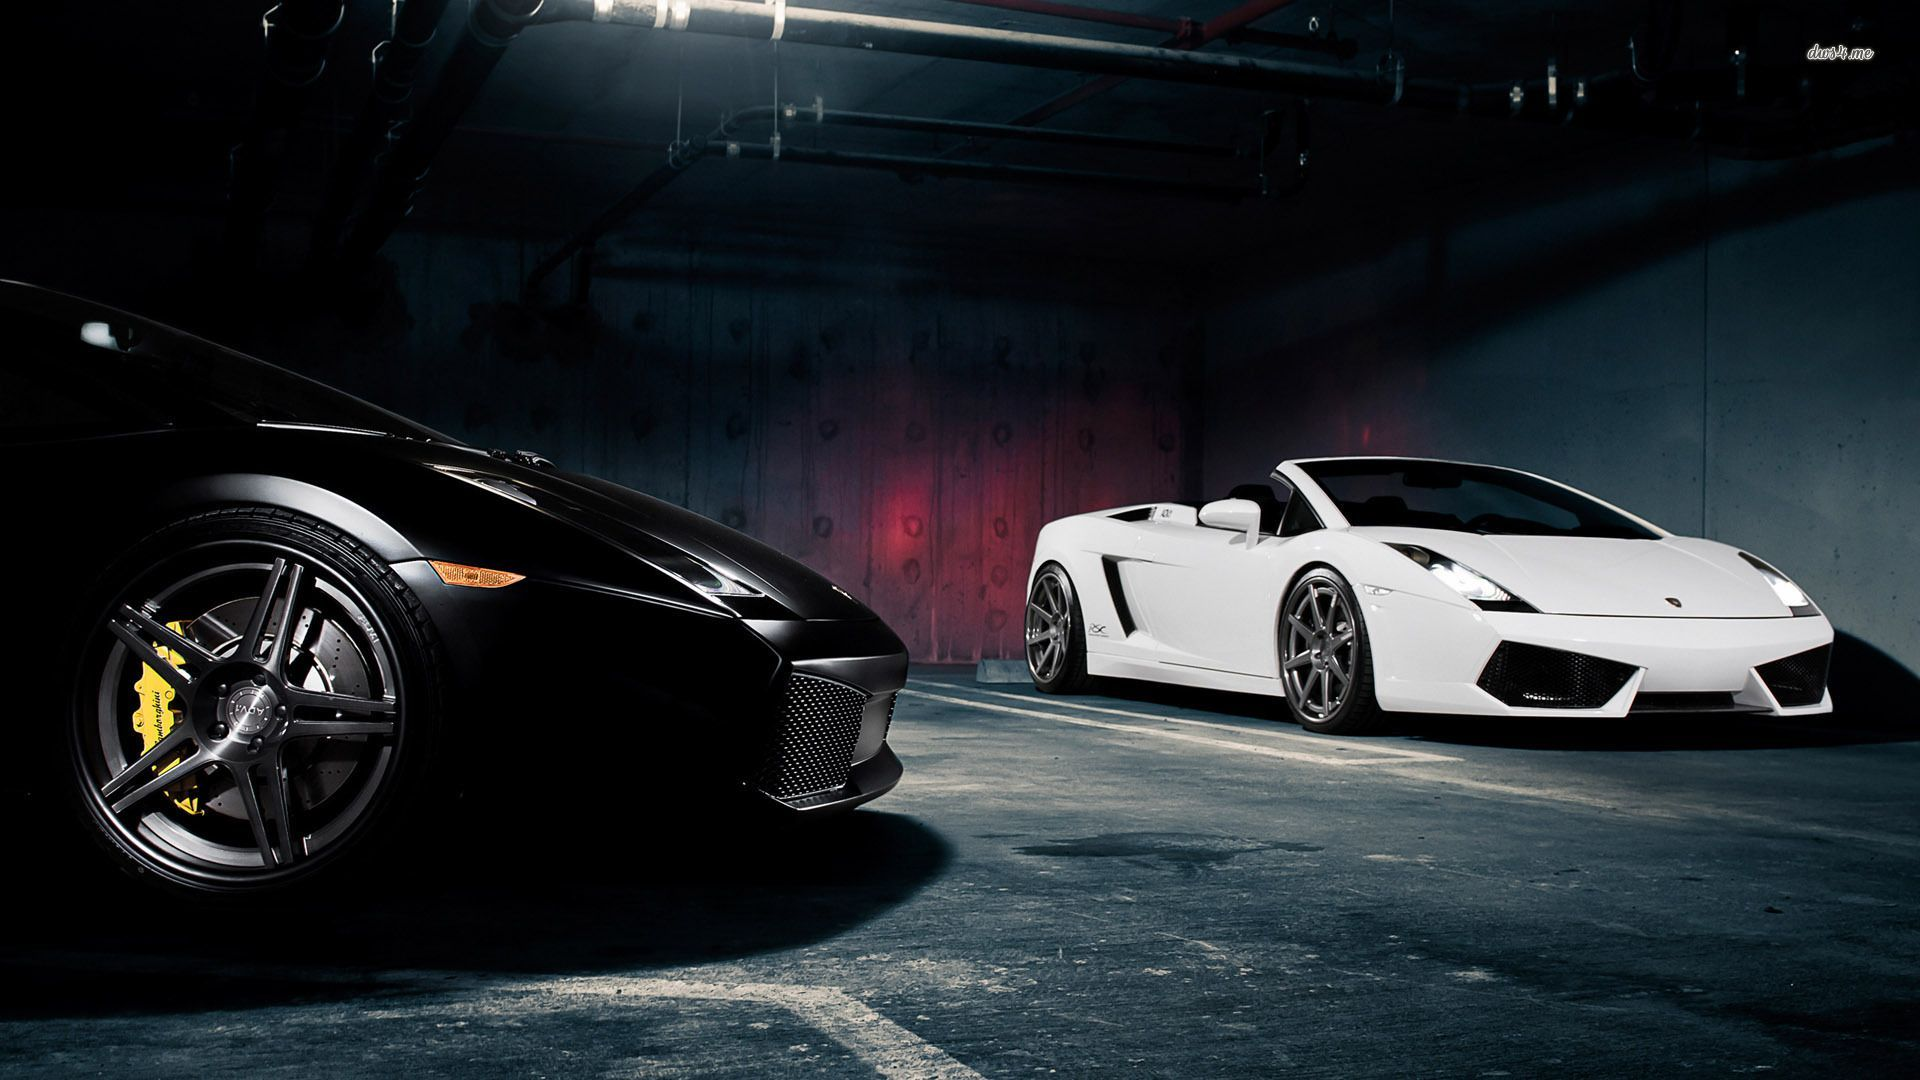 Black Sports Cars Wallpapers Top Free Black Sports Cars Backgrounds Wallpaperaccess